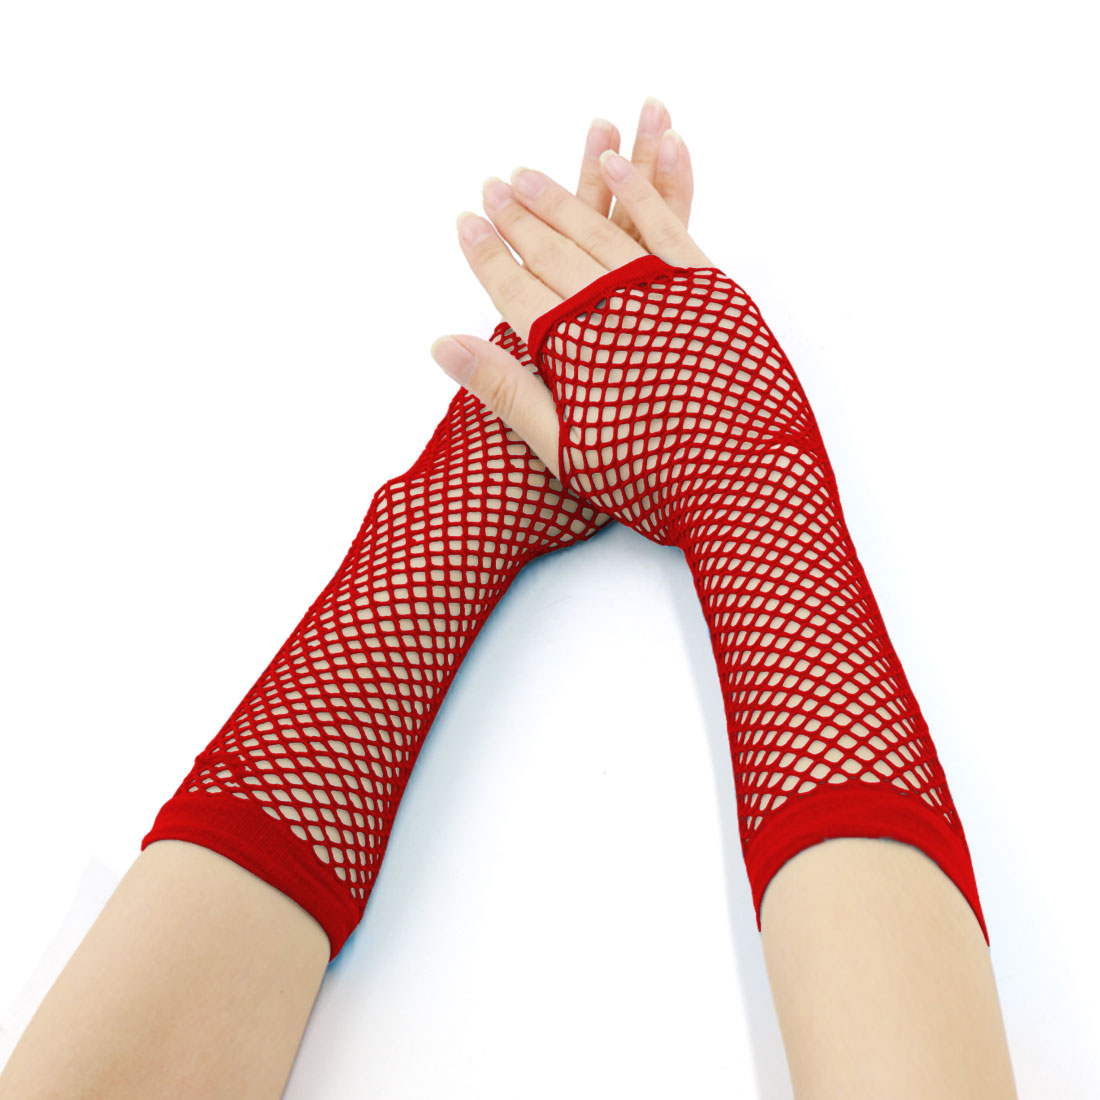 Buy 1 Get 1 Free | Women's Elbow Length Fingerless Fishnet Gloves Red